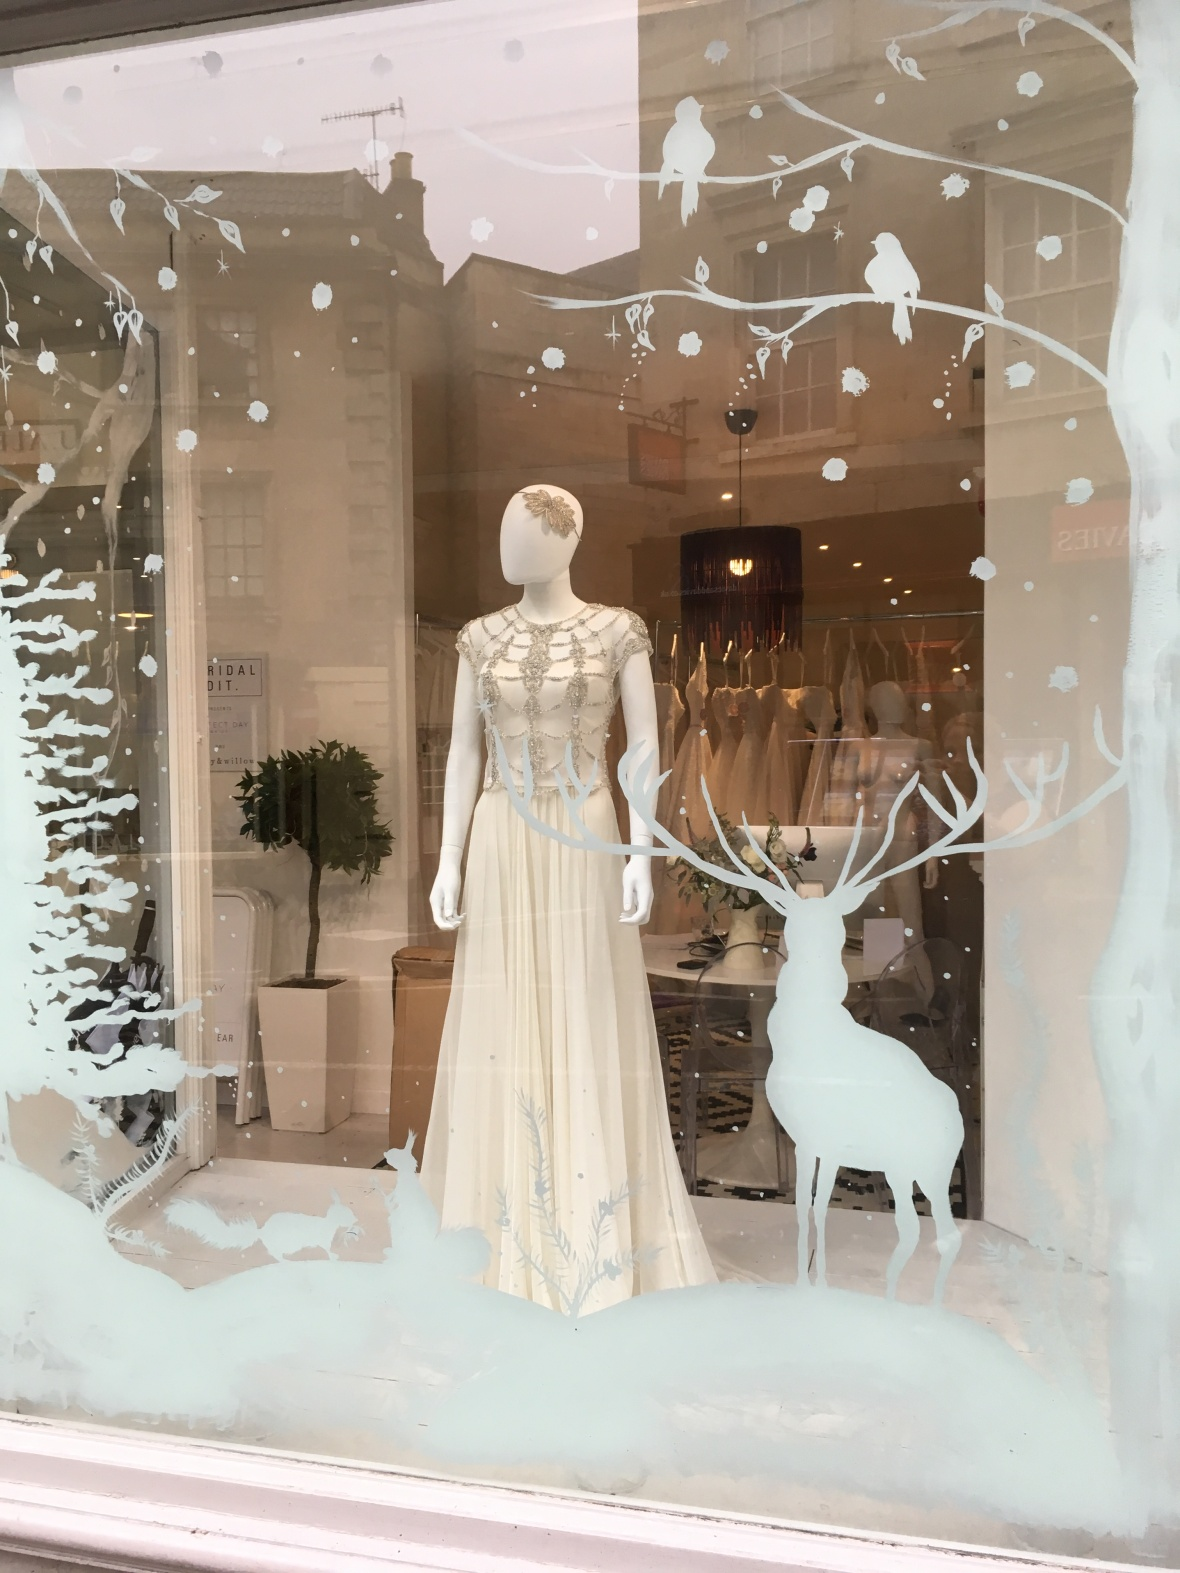 Christmas Winter Wonderland Bridal Shop Window Display, Bradford-on-Avon nr Bath.